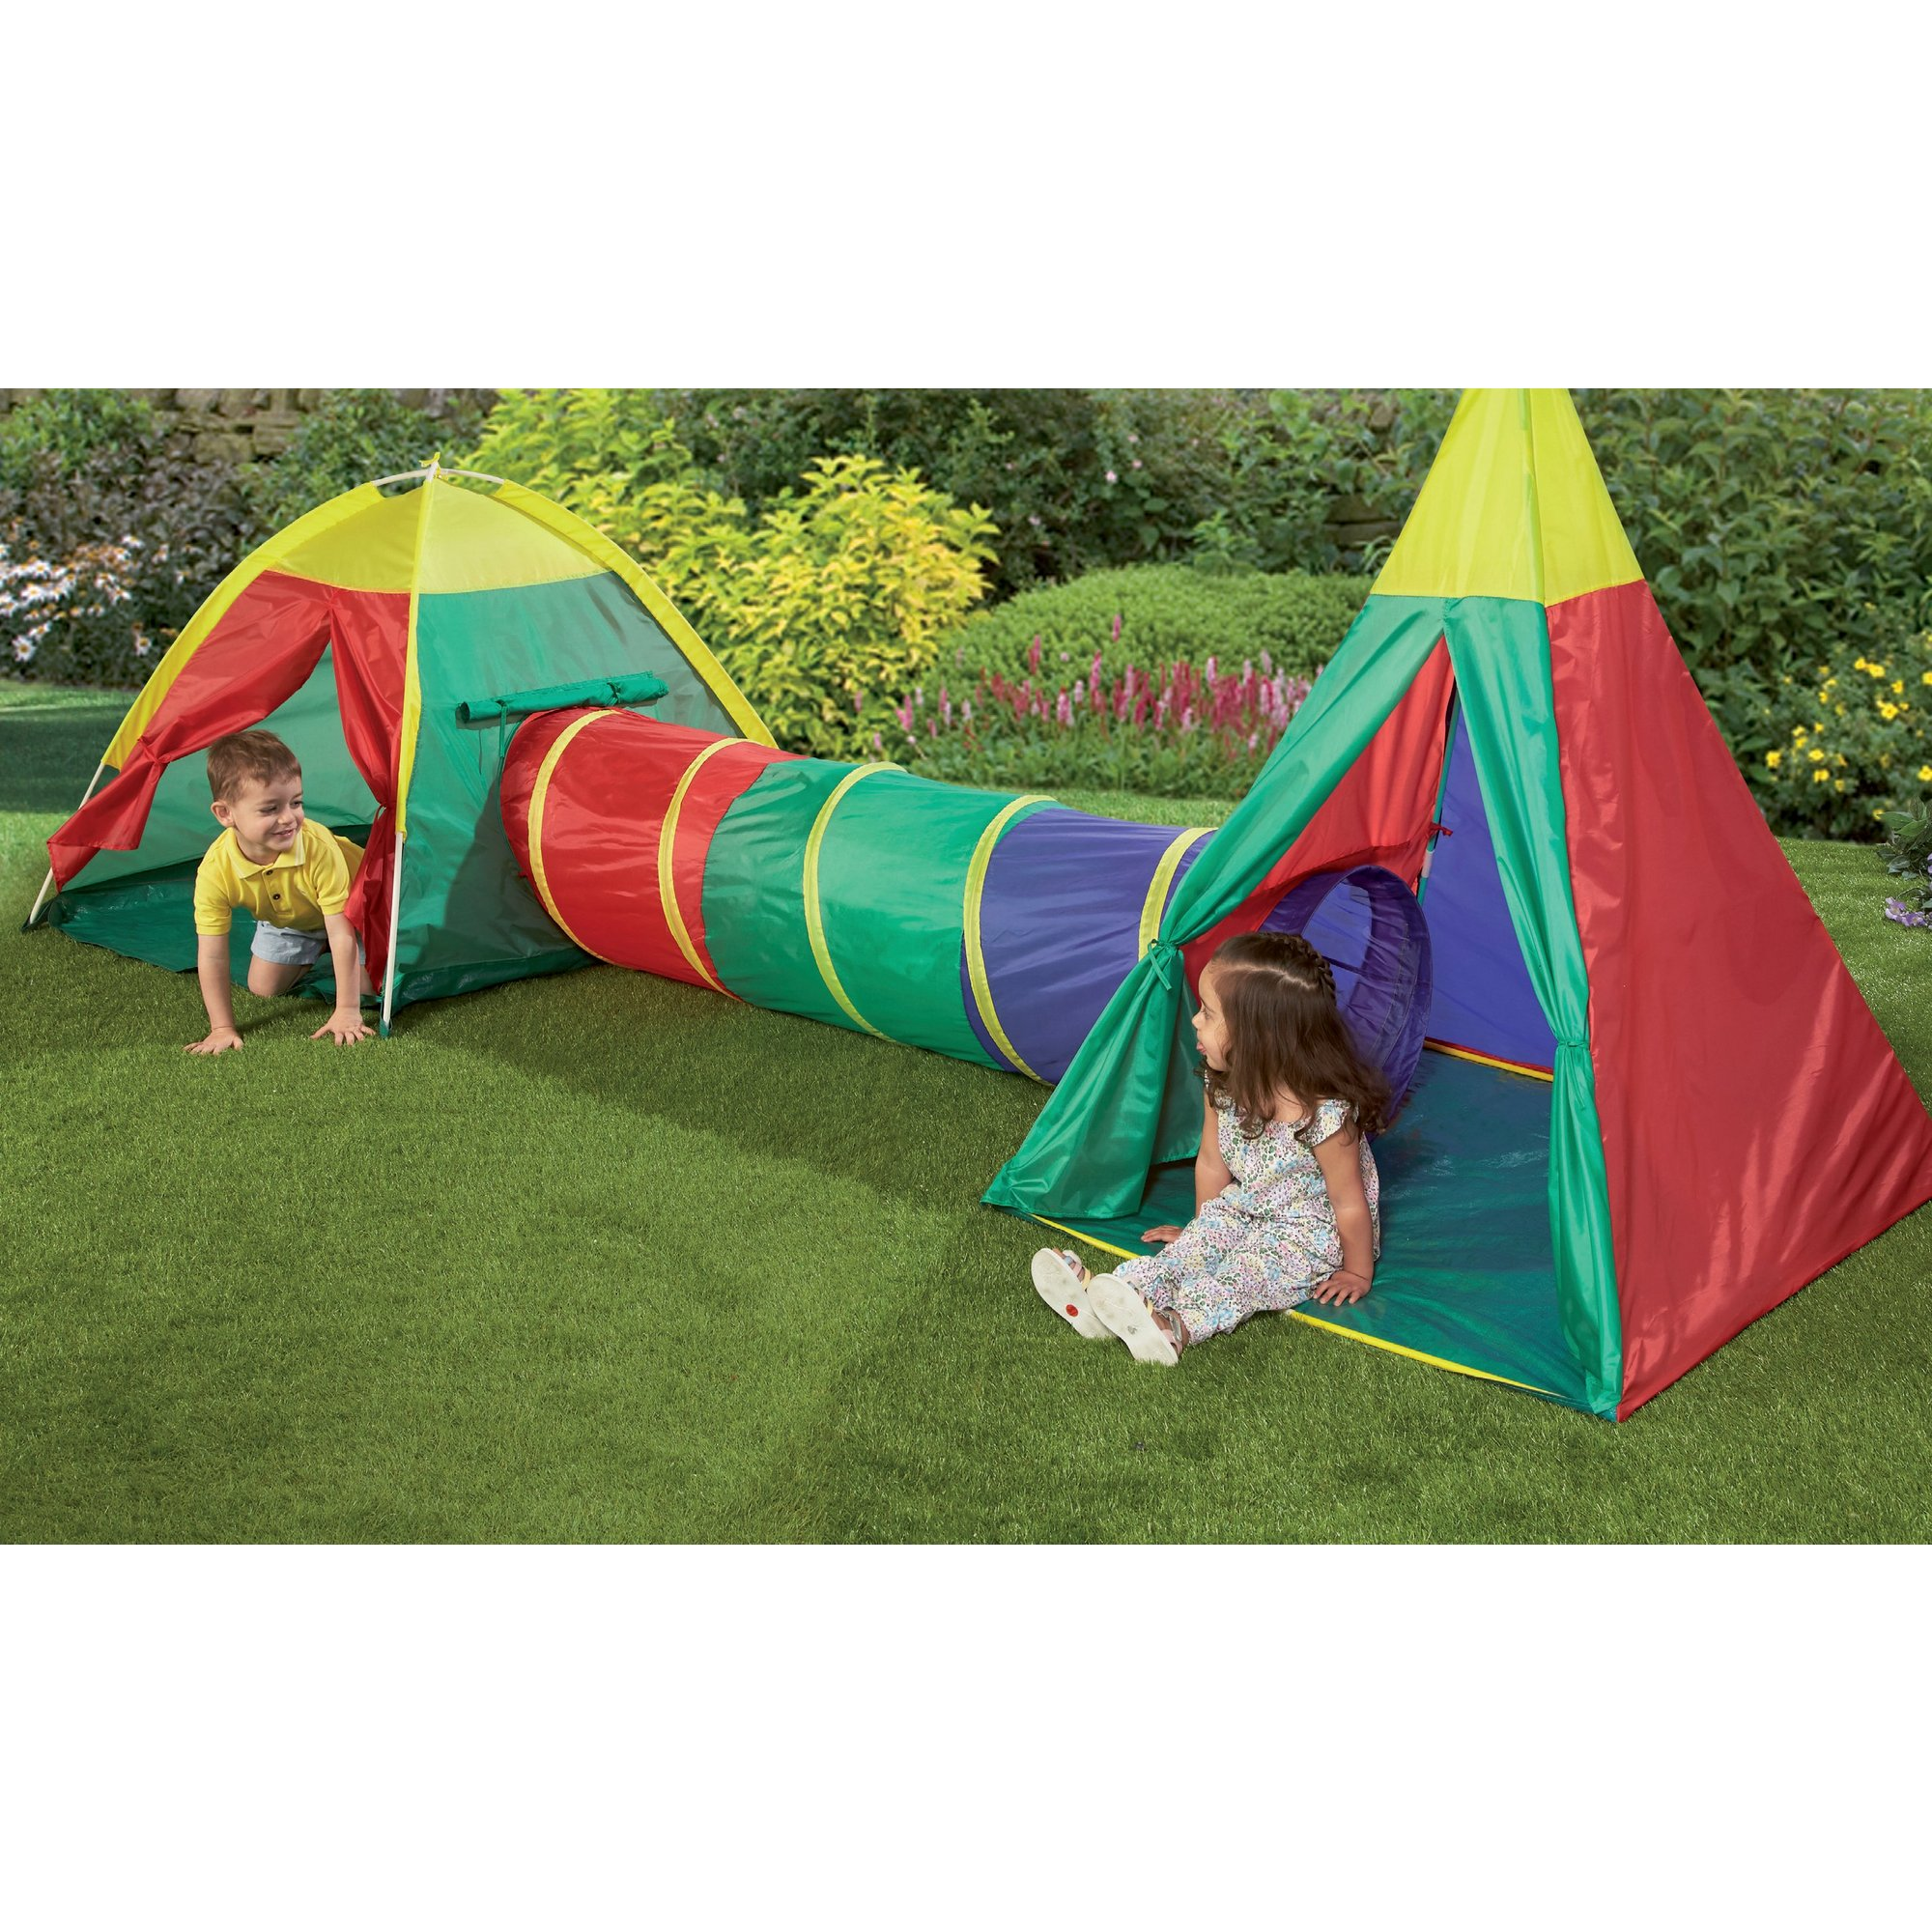 Image of 3-in-1 Adventure Play Tent